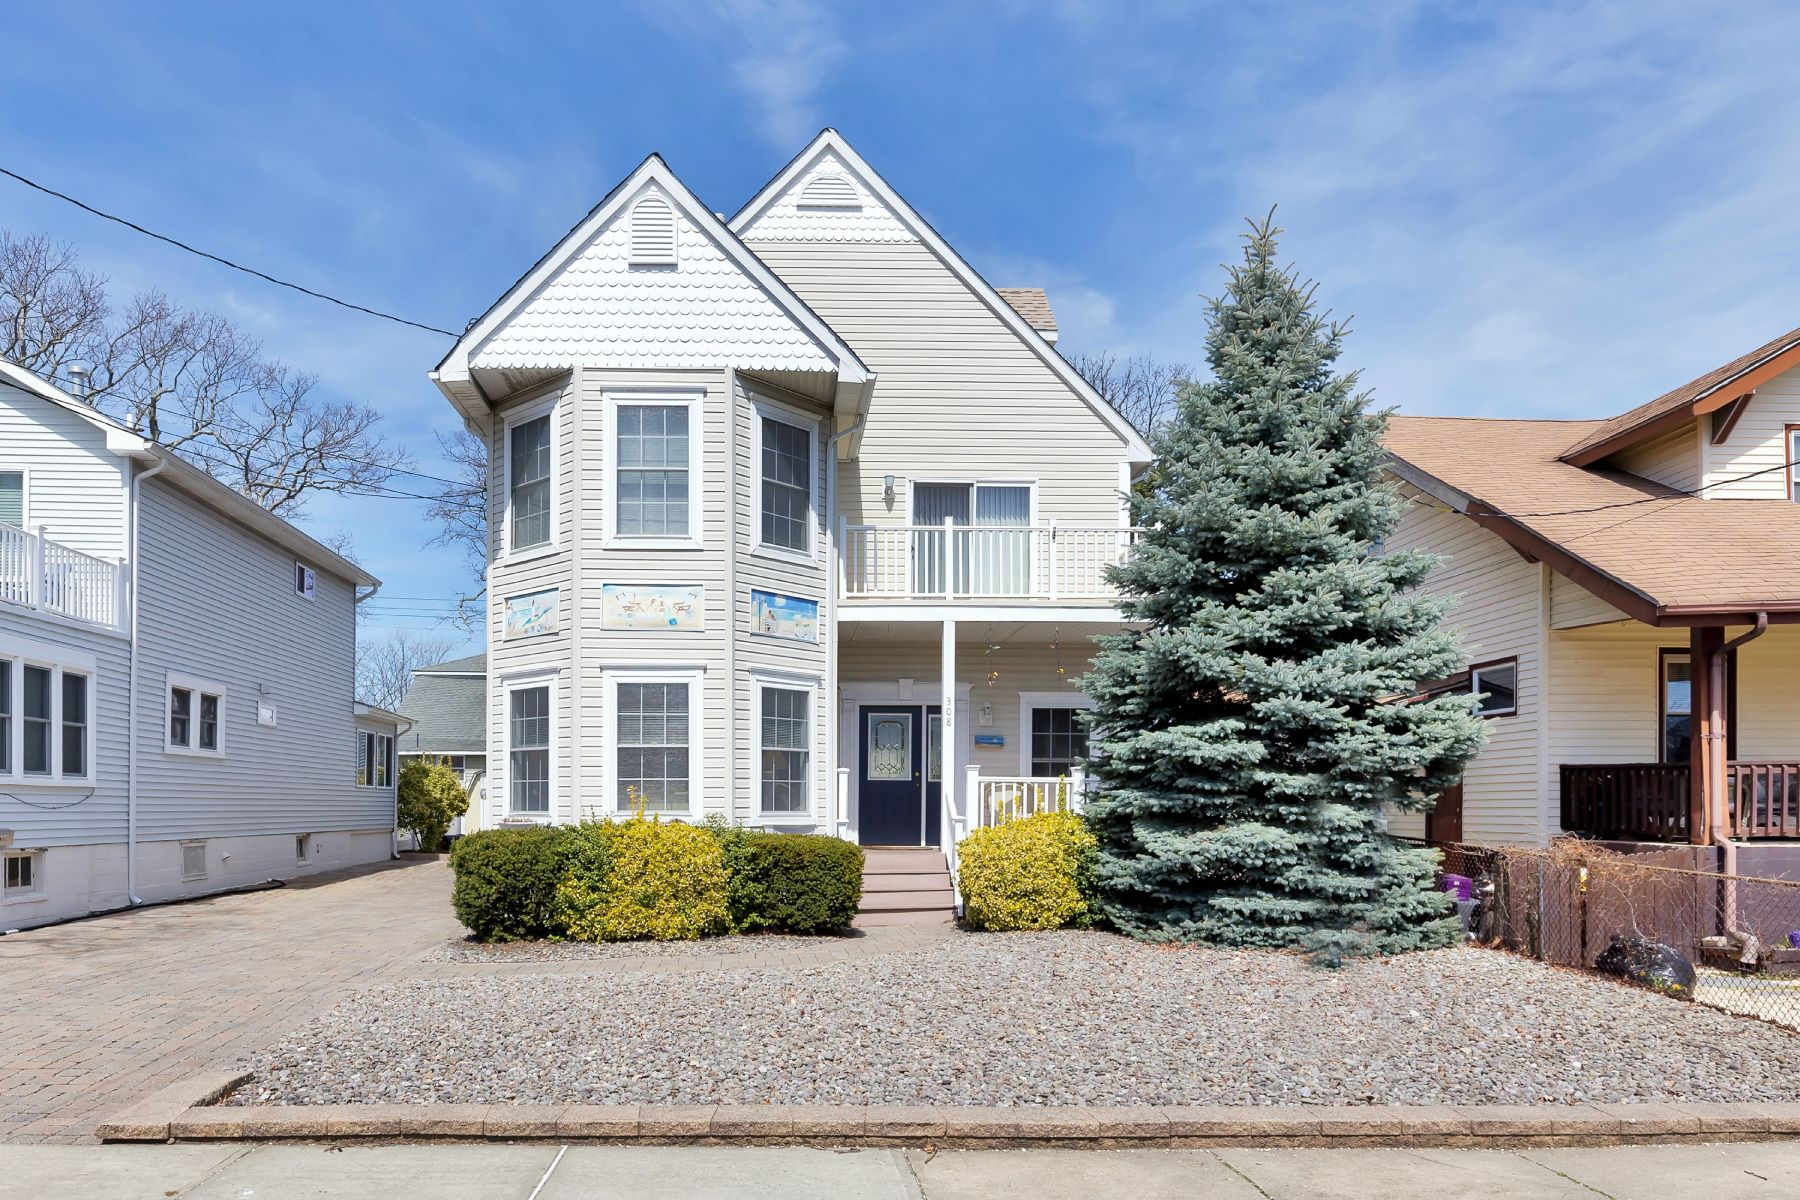 Single Family Home for Sale at Custom Shore Colonial 308 15th Avenue Belmar, New Jersey 07719 United States